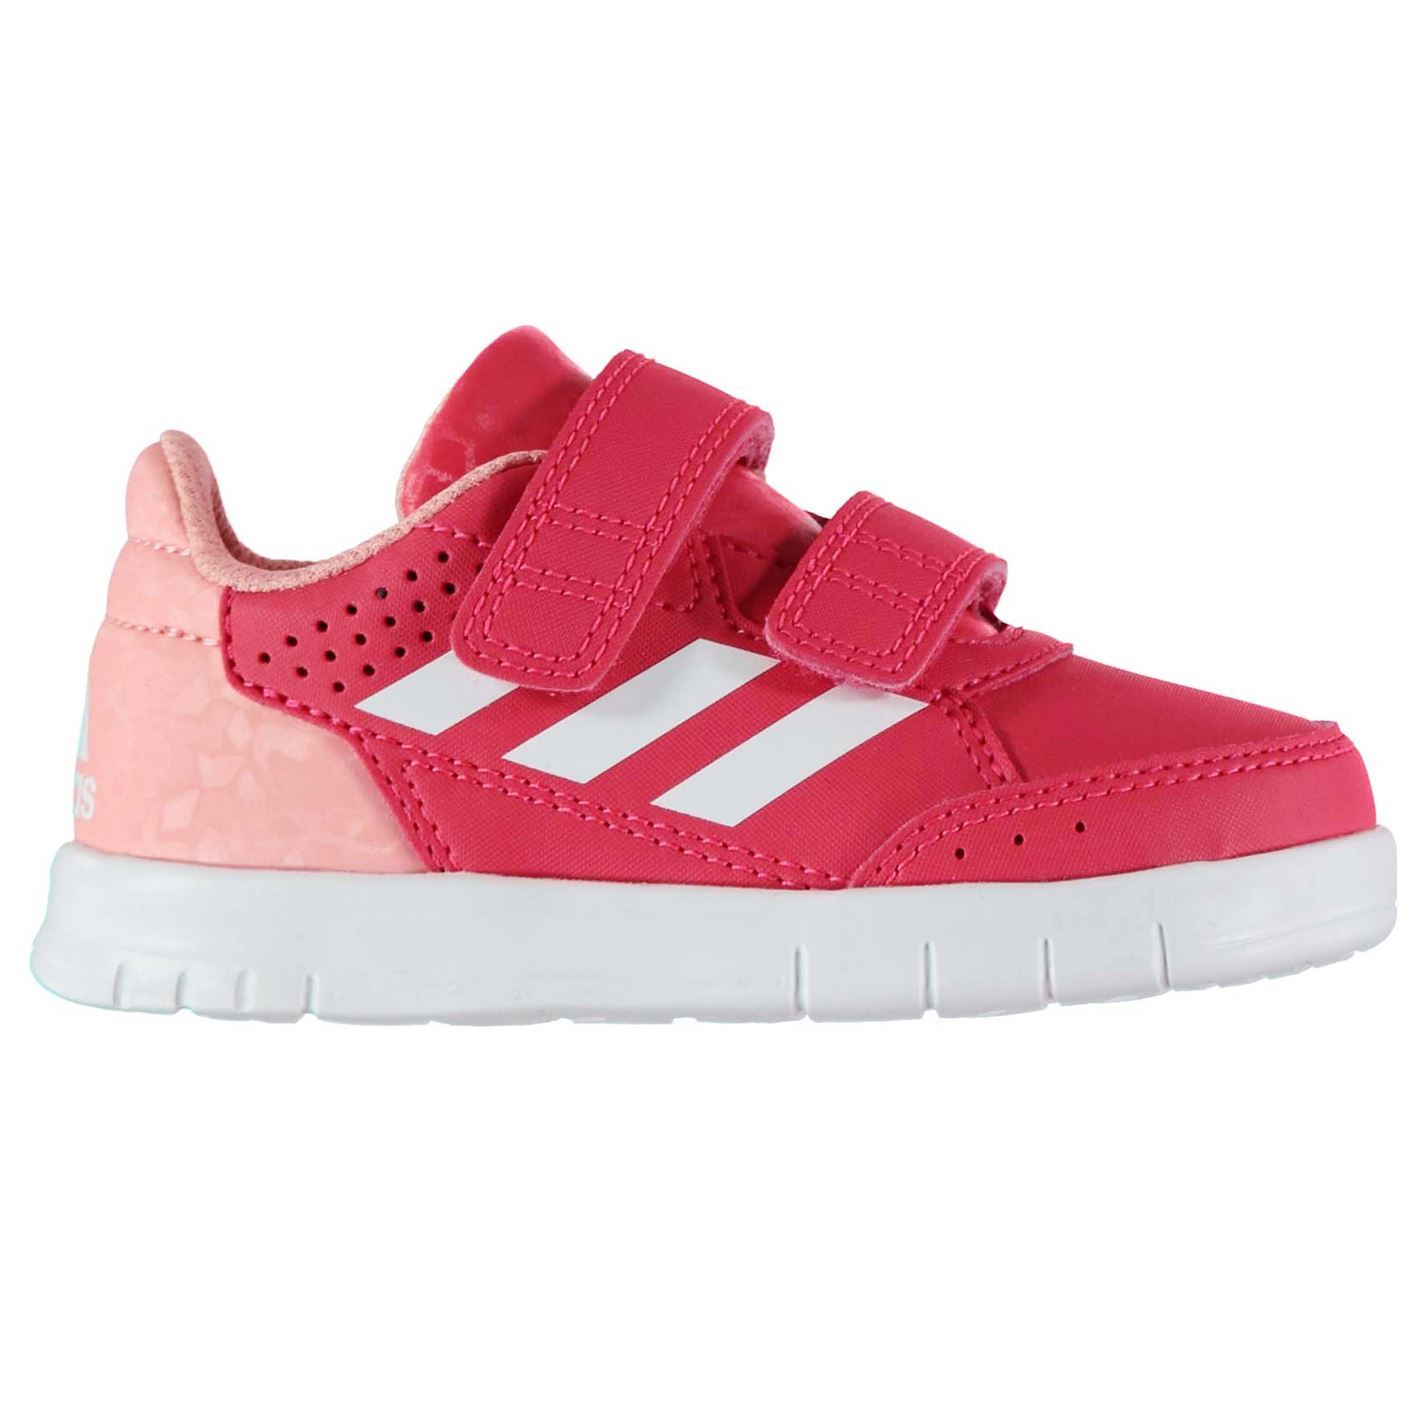 Adidas baby sneakers for boys and girls (photo)